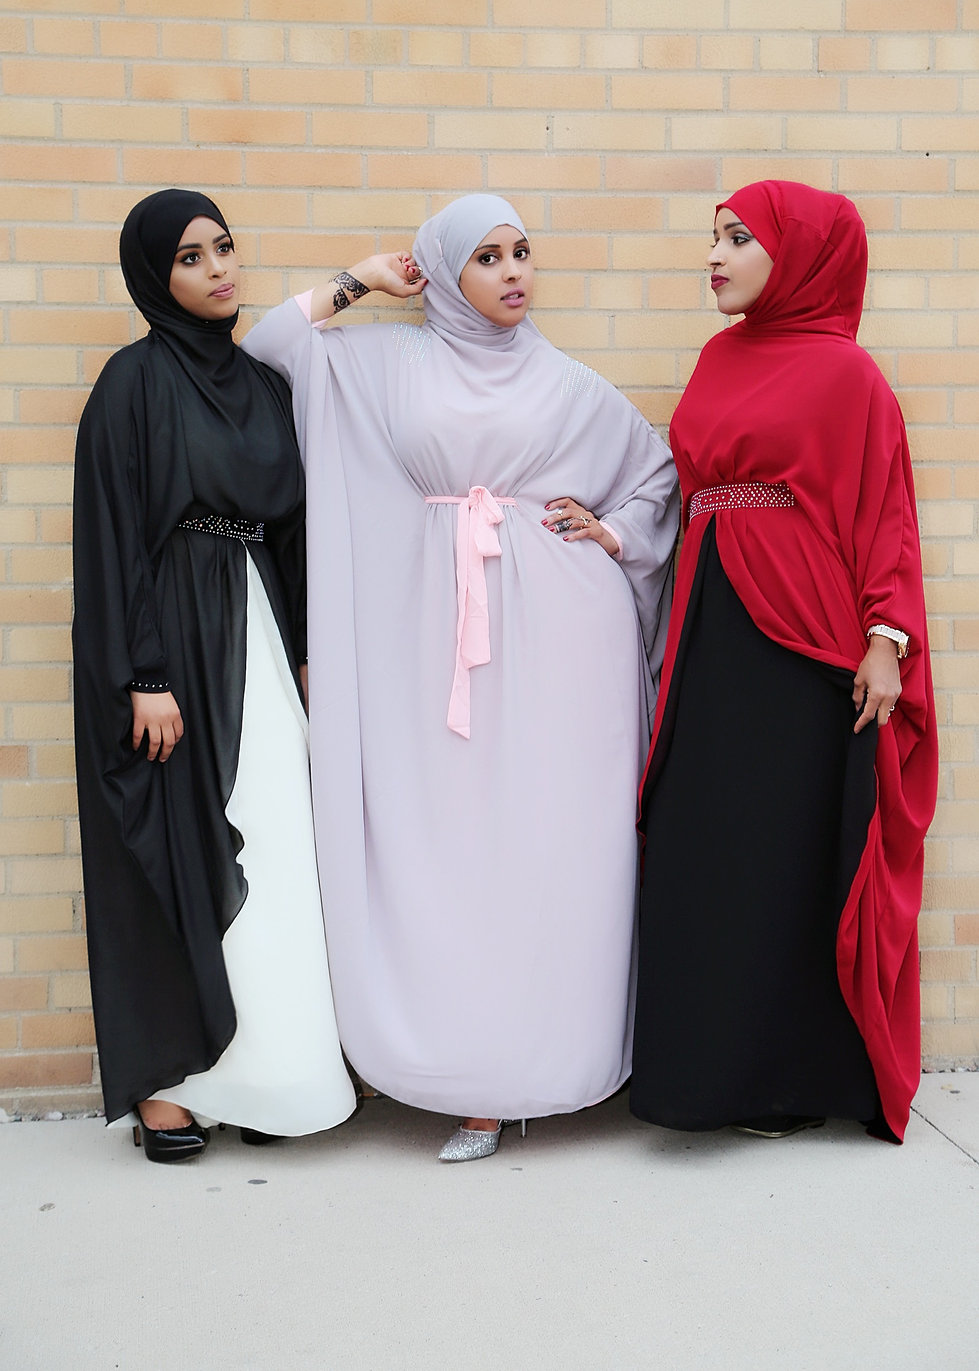 Muslim matchmaking services